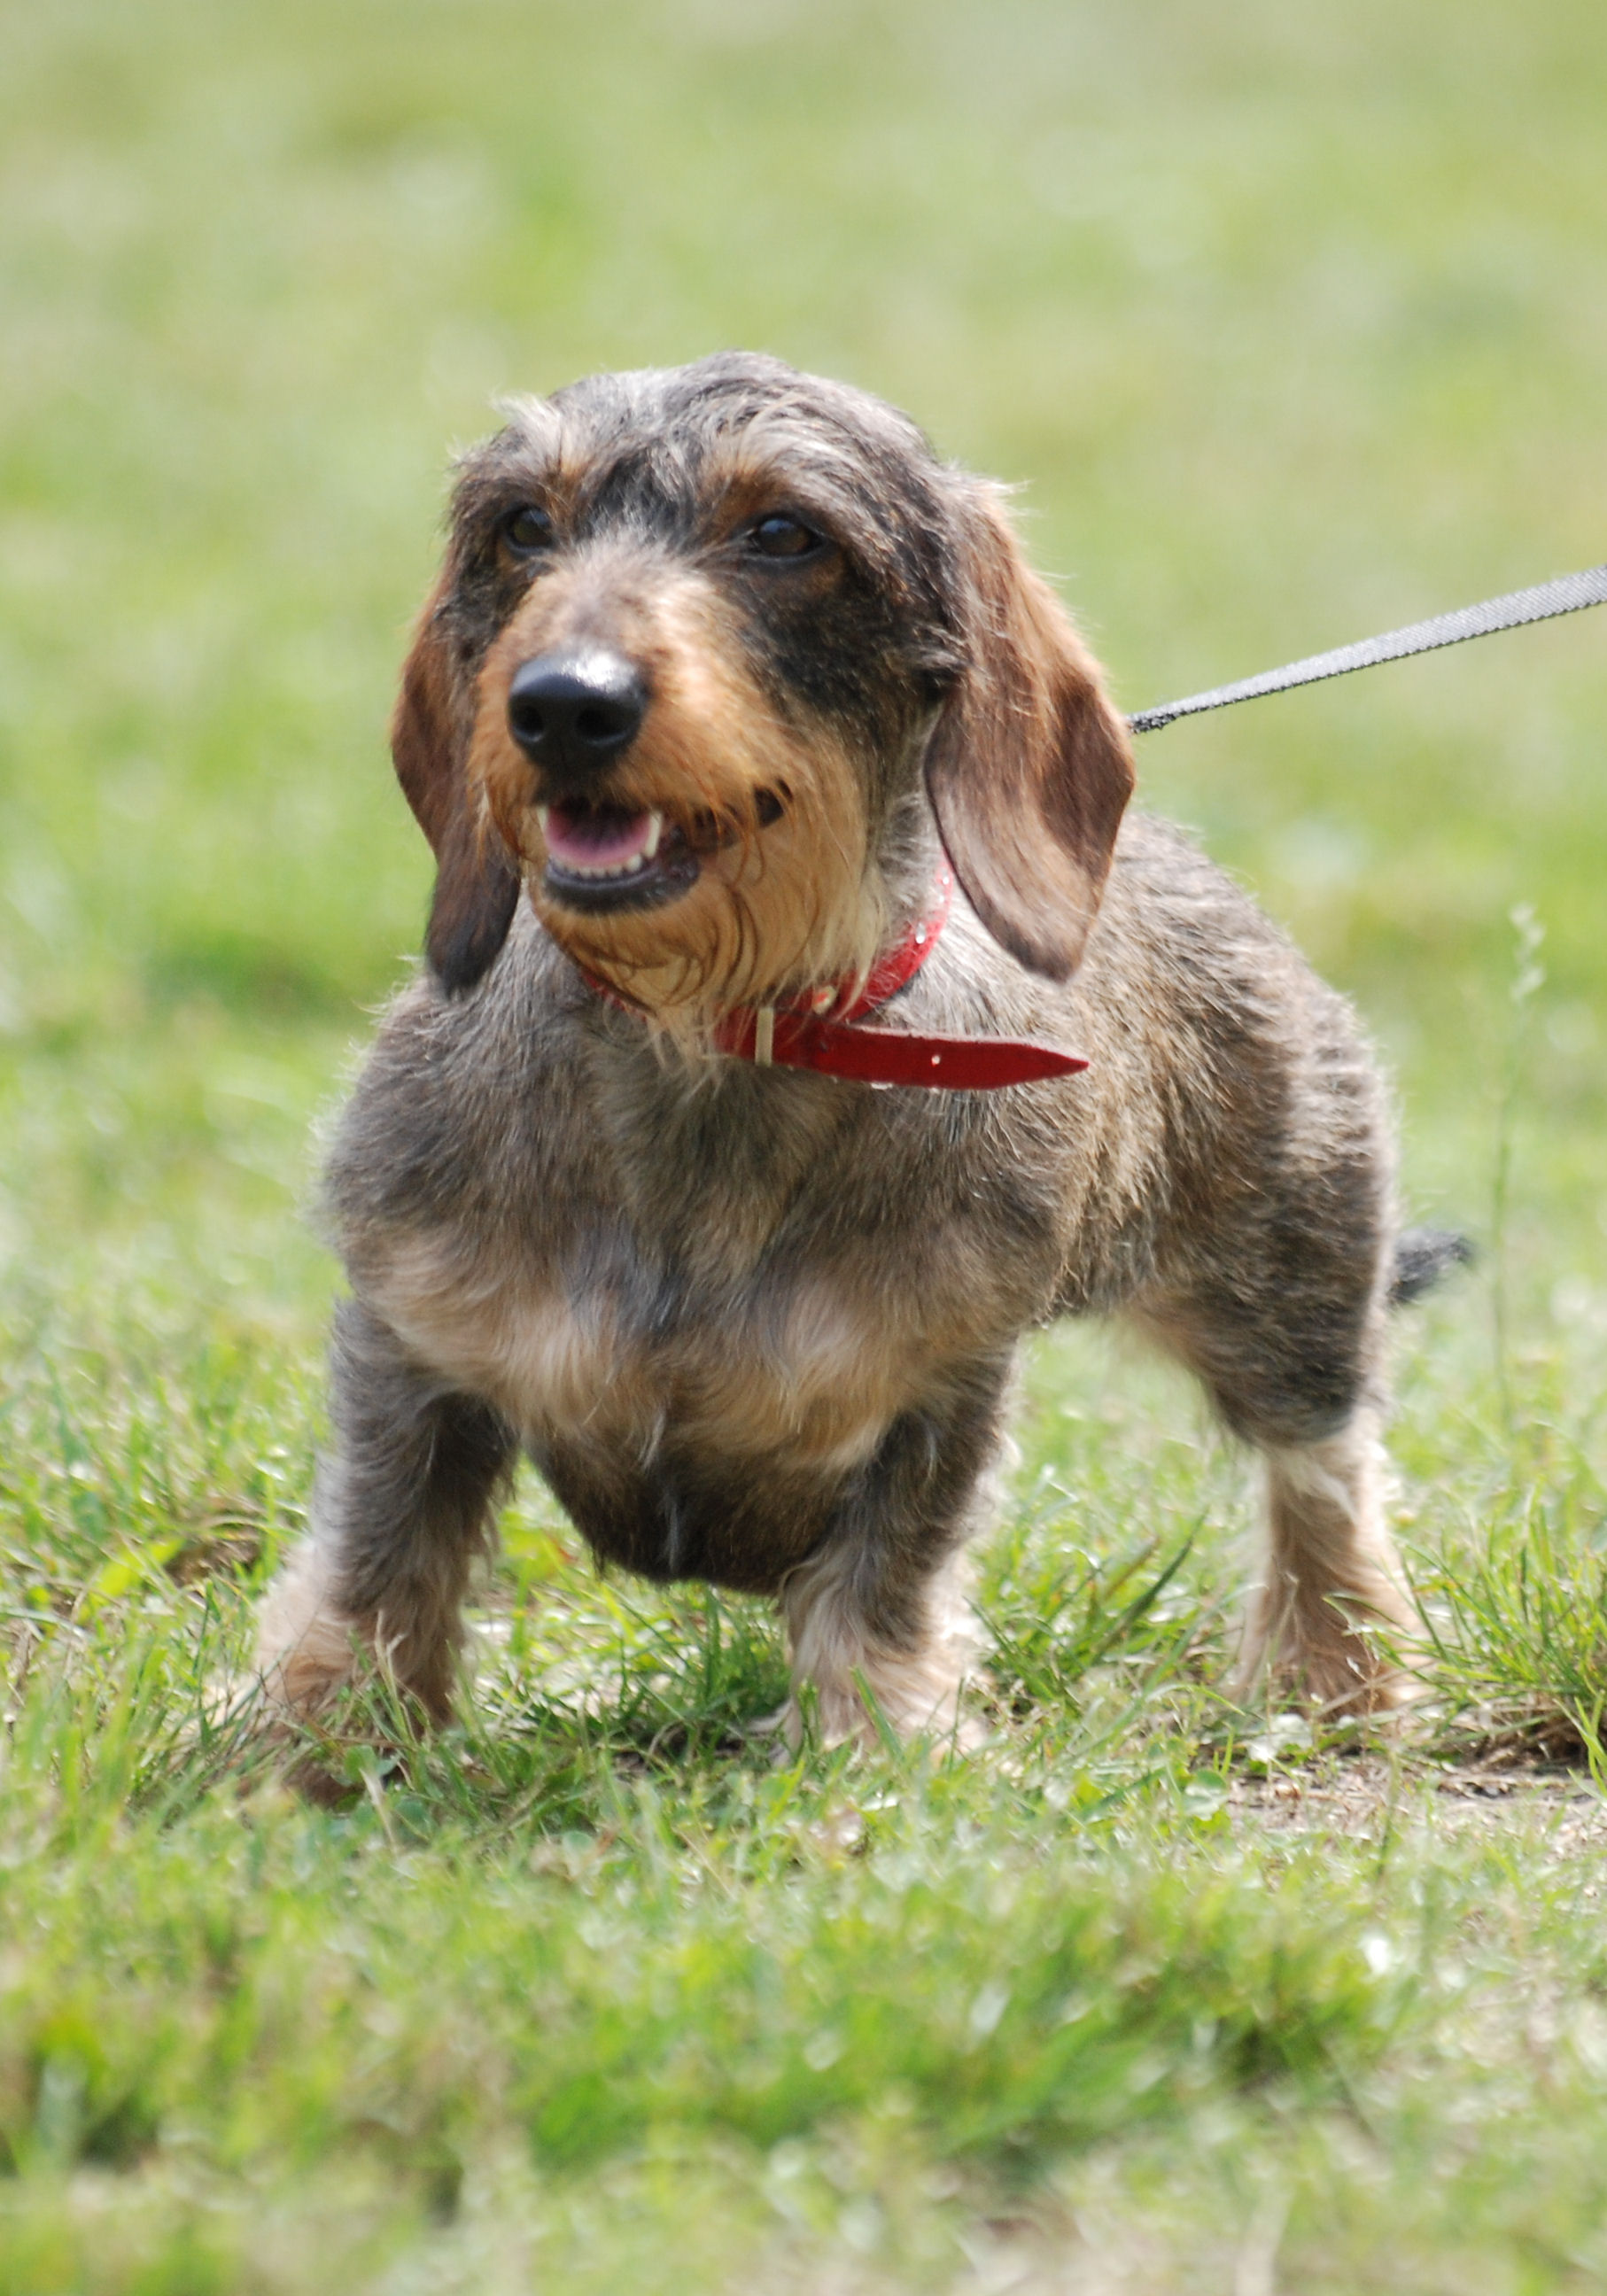 File:Wire-haired Dachshund R 01.JPG - Wikimedia Commons